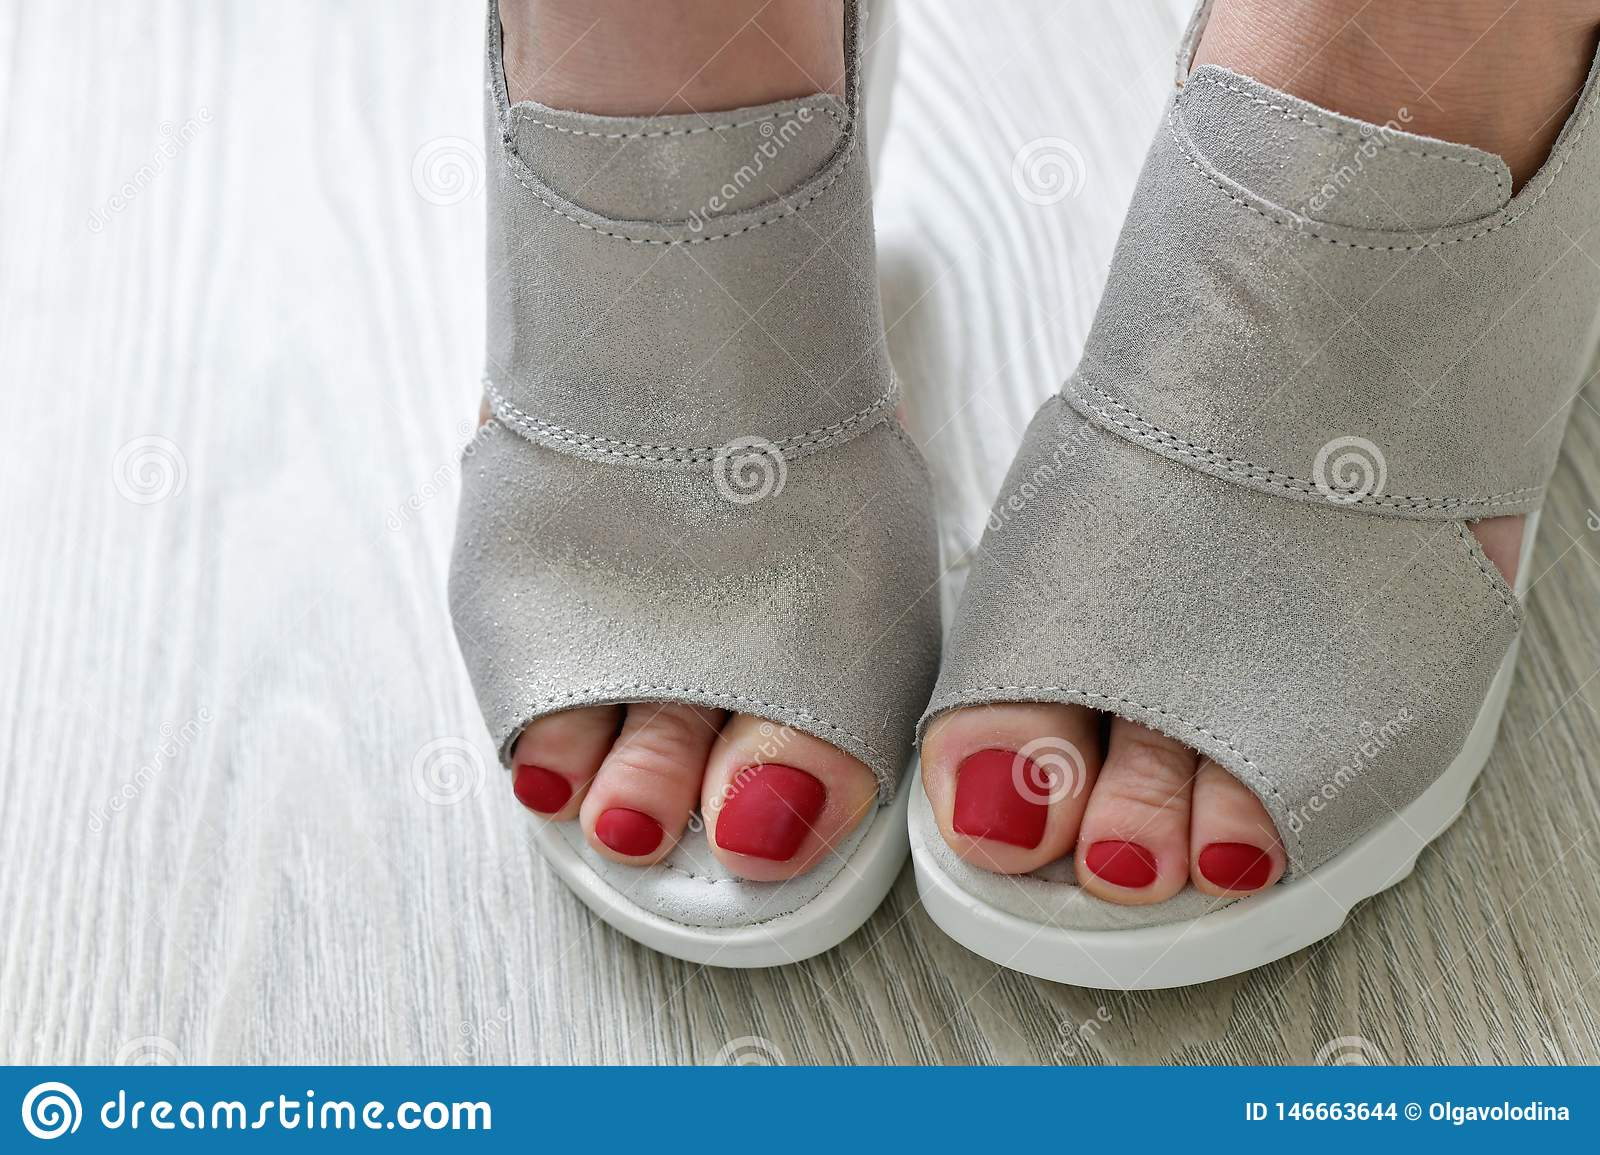 The Womens legs in summer white sandals